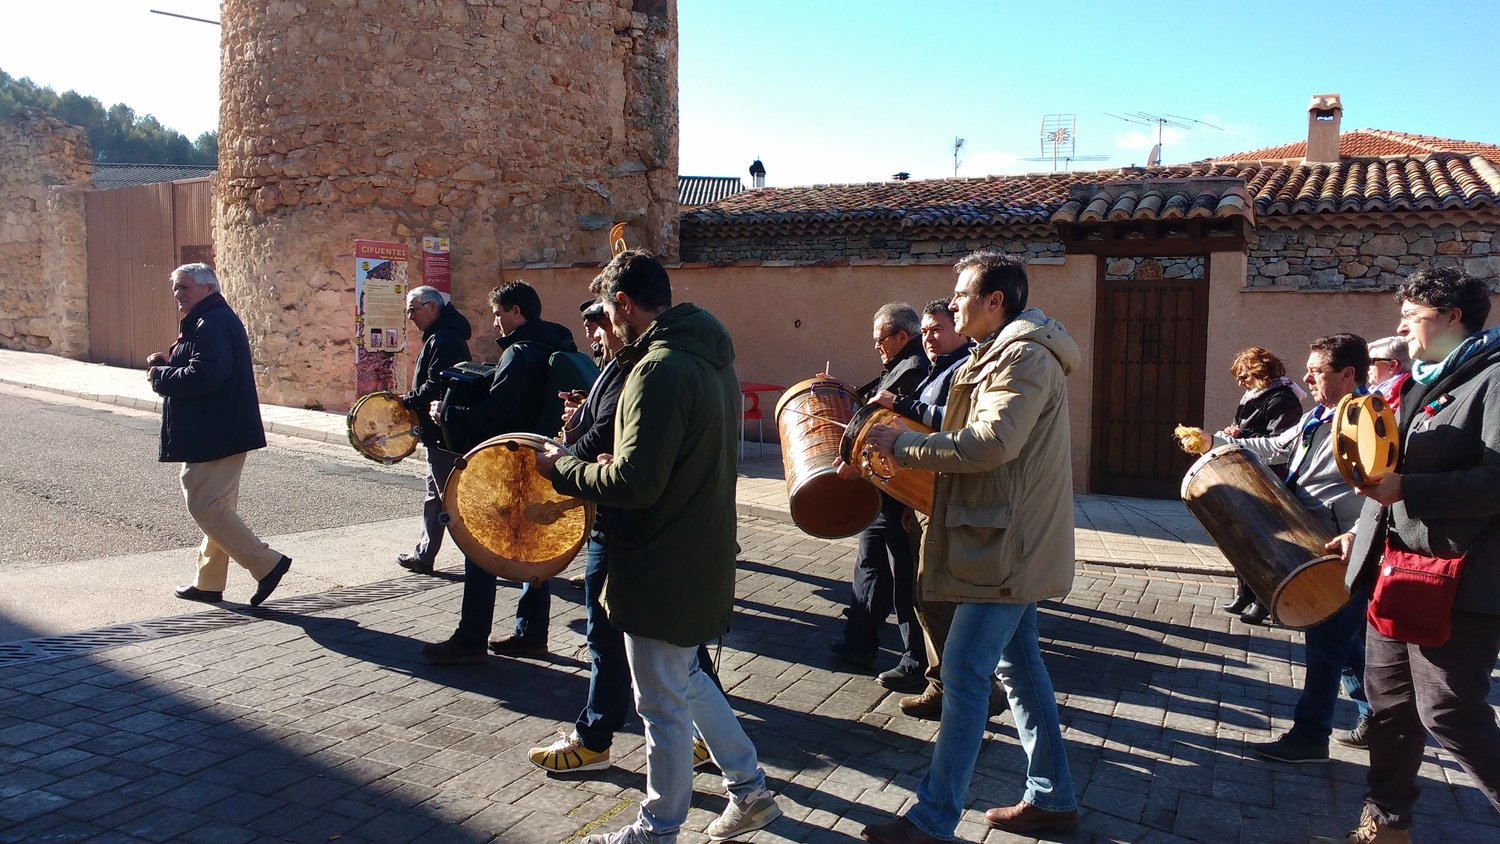 Walking the streets of Spain, providing Christmas cheer, the Ronda Group is now bringing a taste of Castilian music to Tularosa.